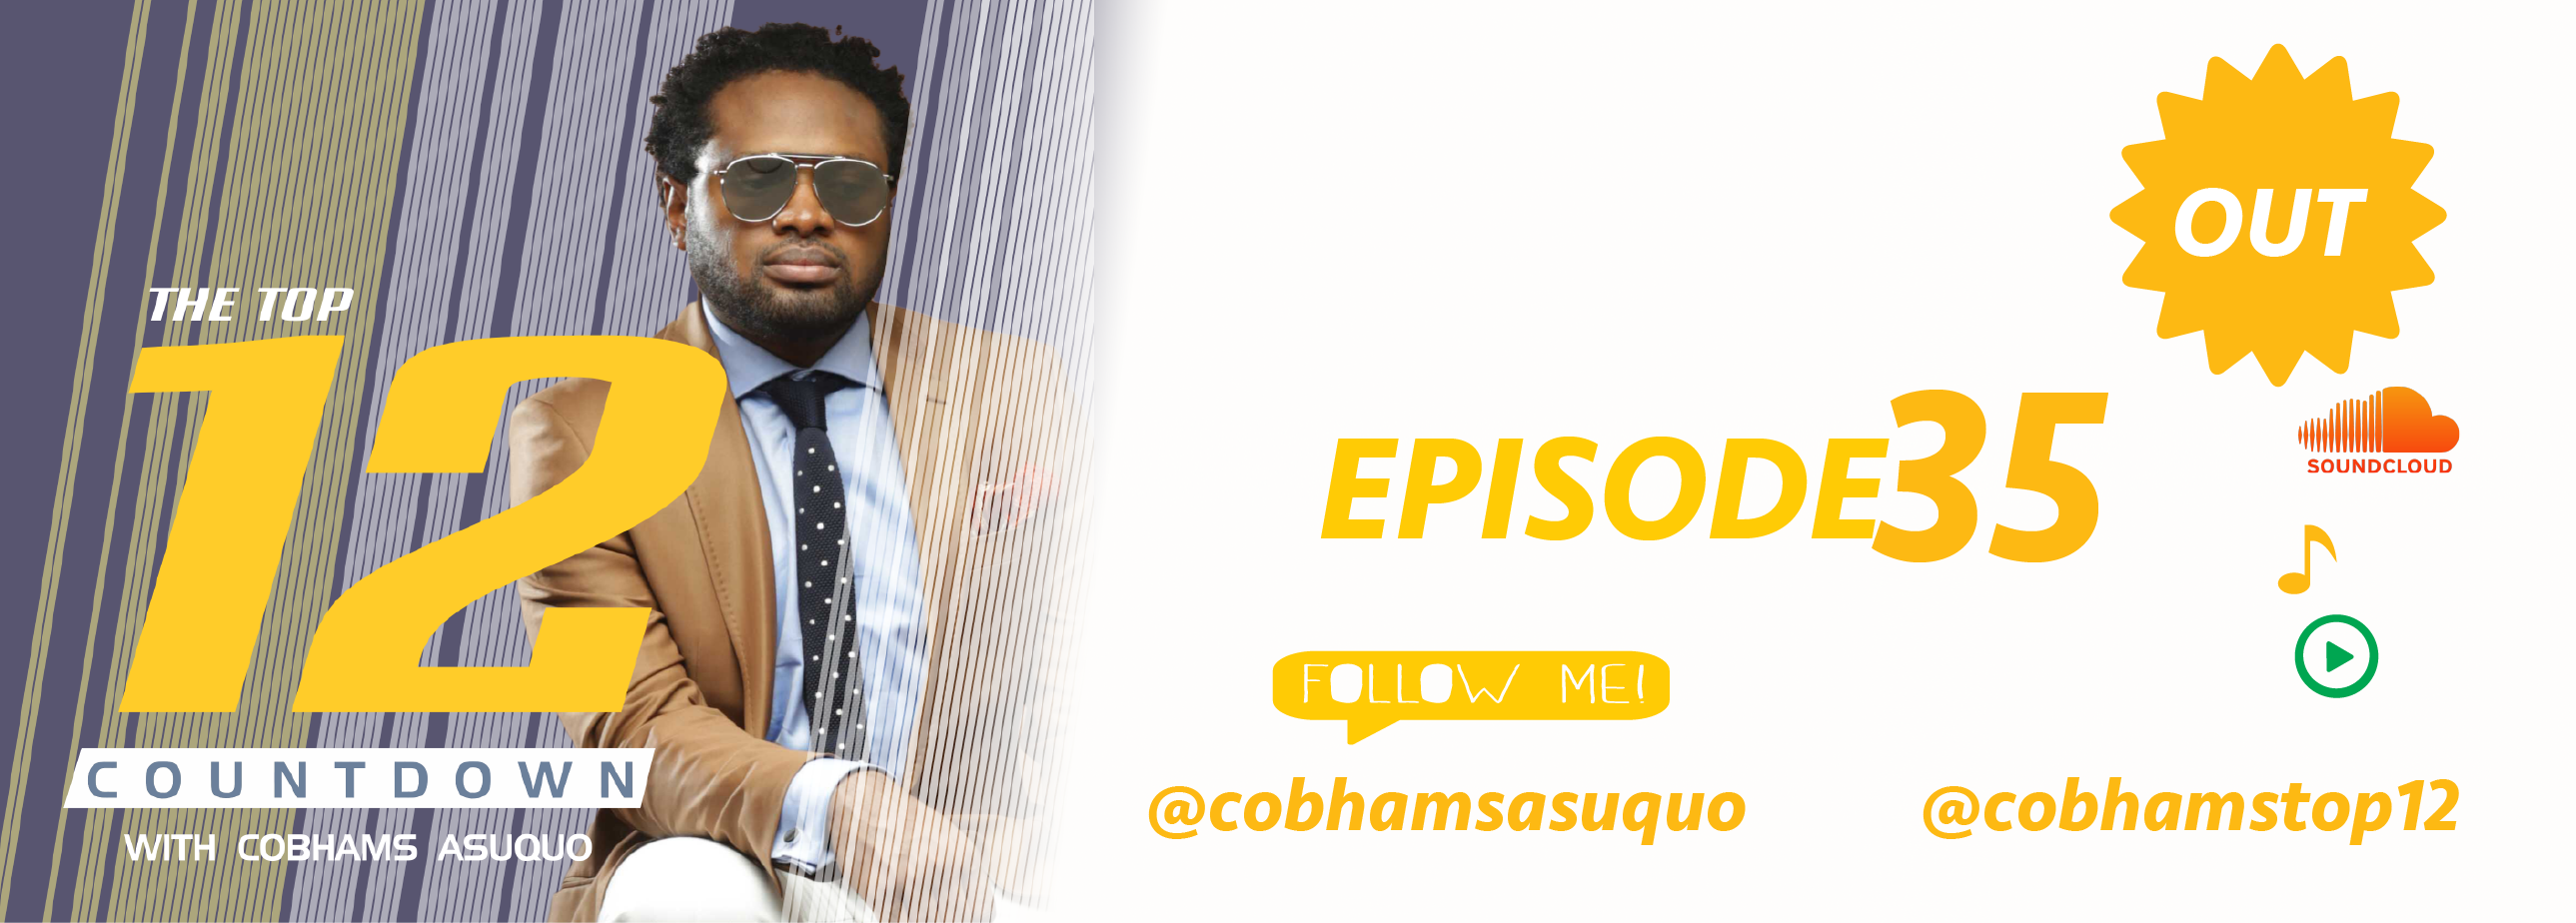 The Top 12 Countdown With Cobhams Asuquo – Ep 35